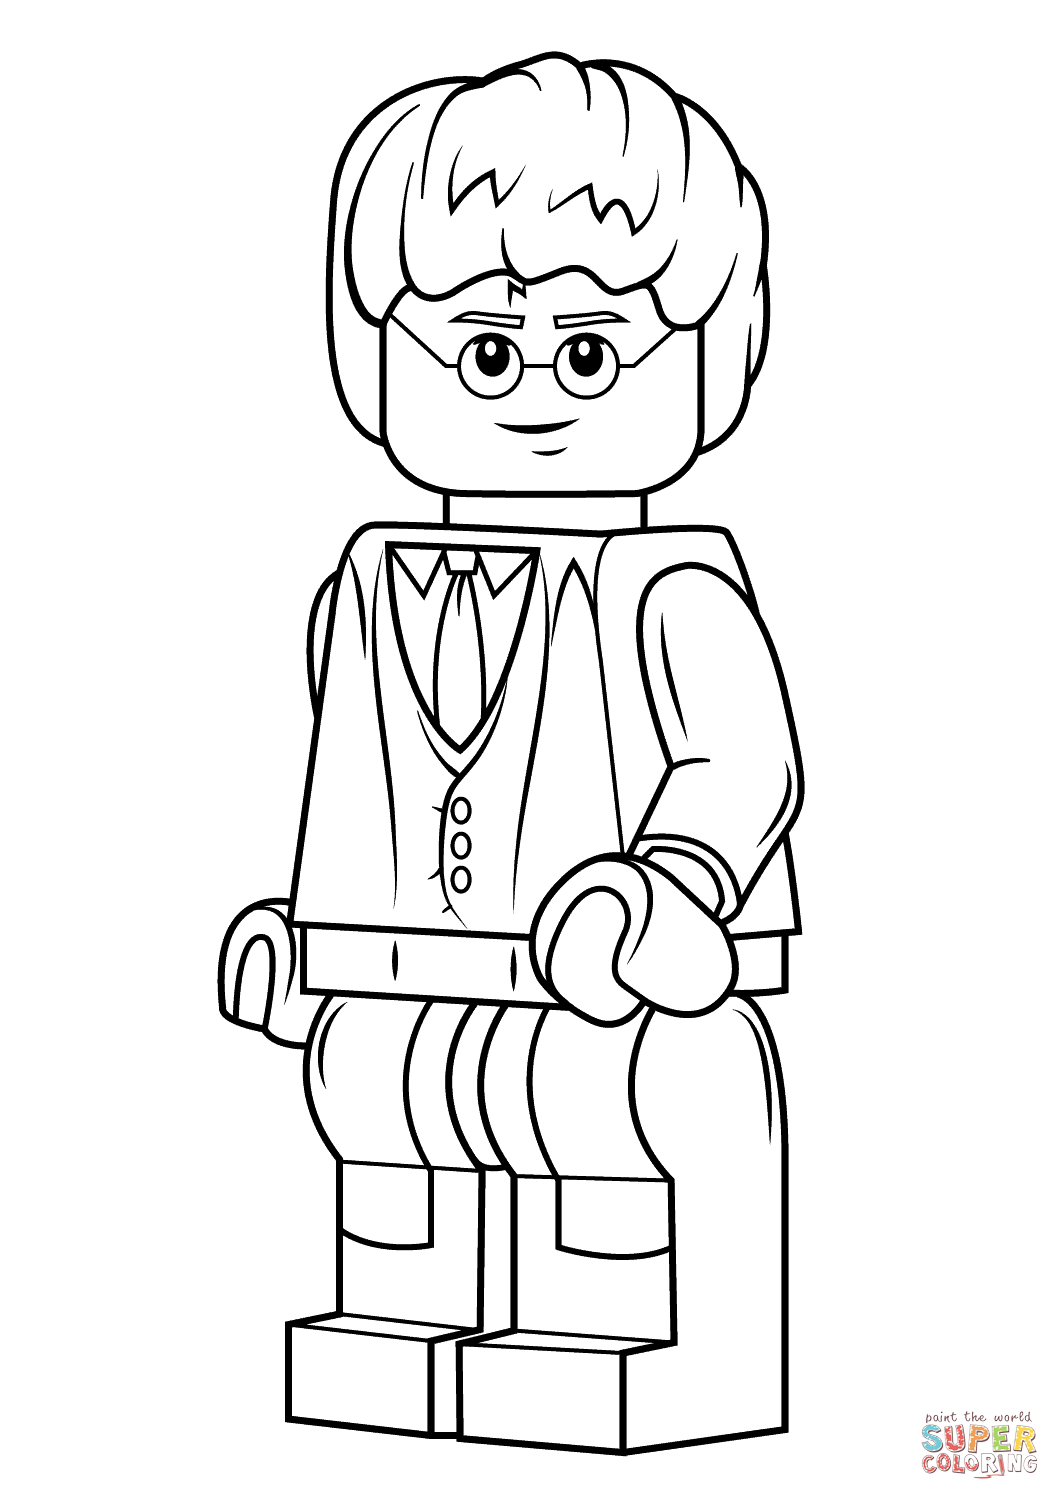 1060x1500 Growth Lego Person Coloring Pages Harry Potter